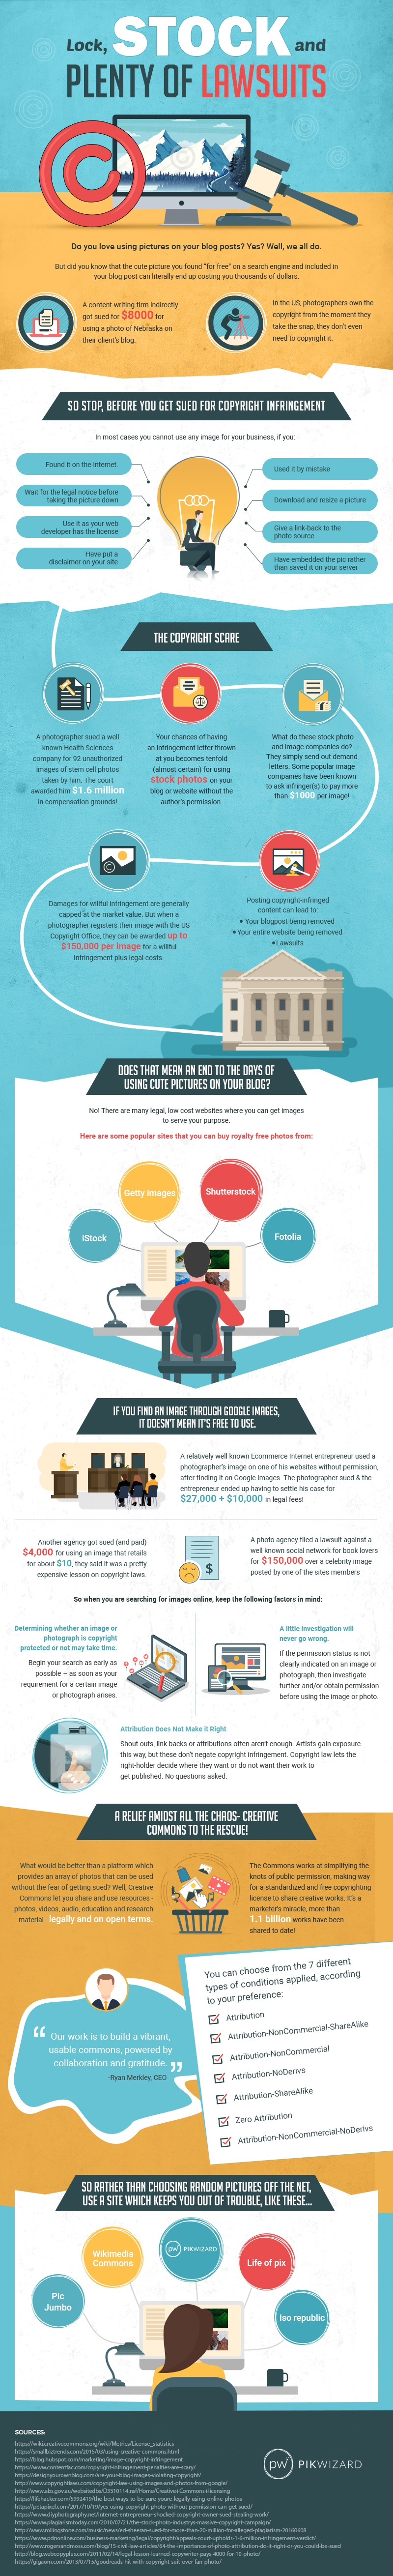 Copyright Law and Online Images Infographic